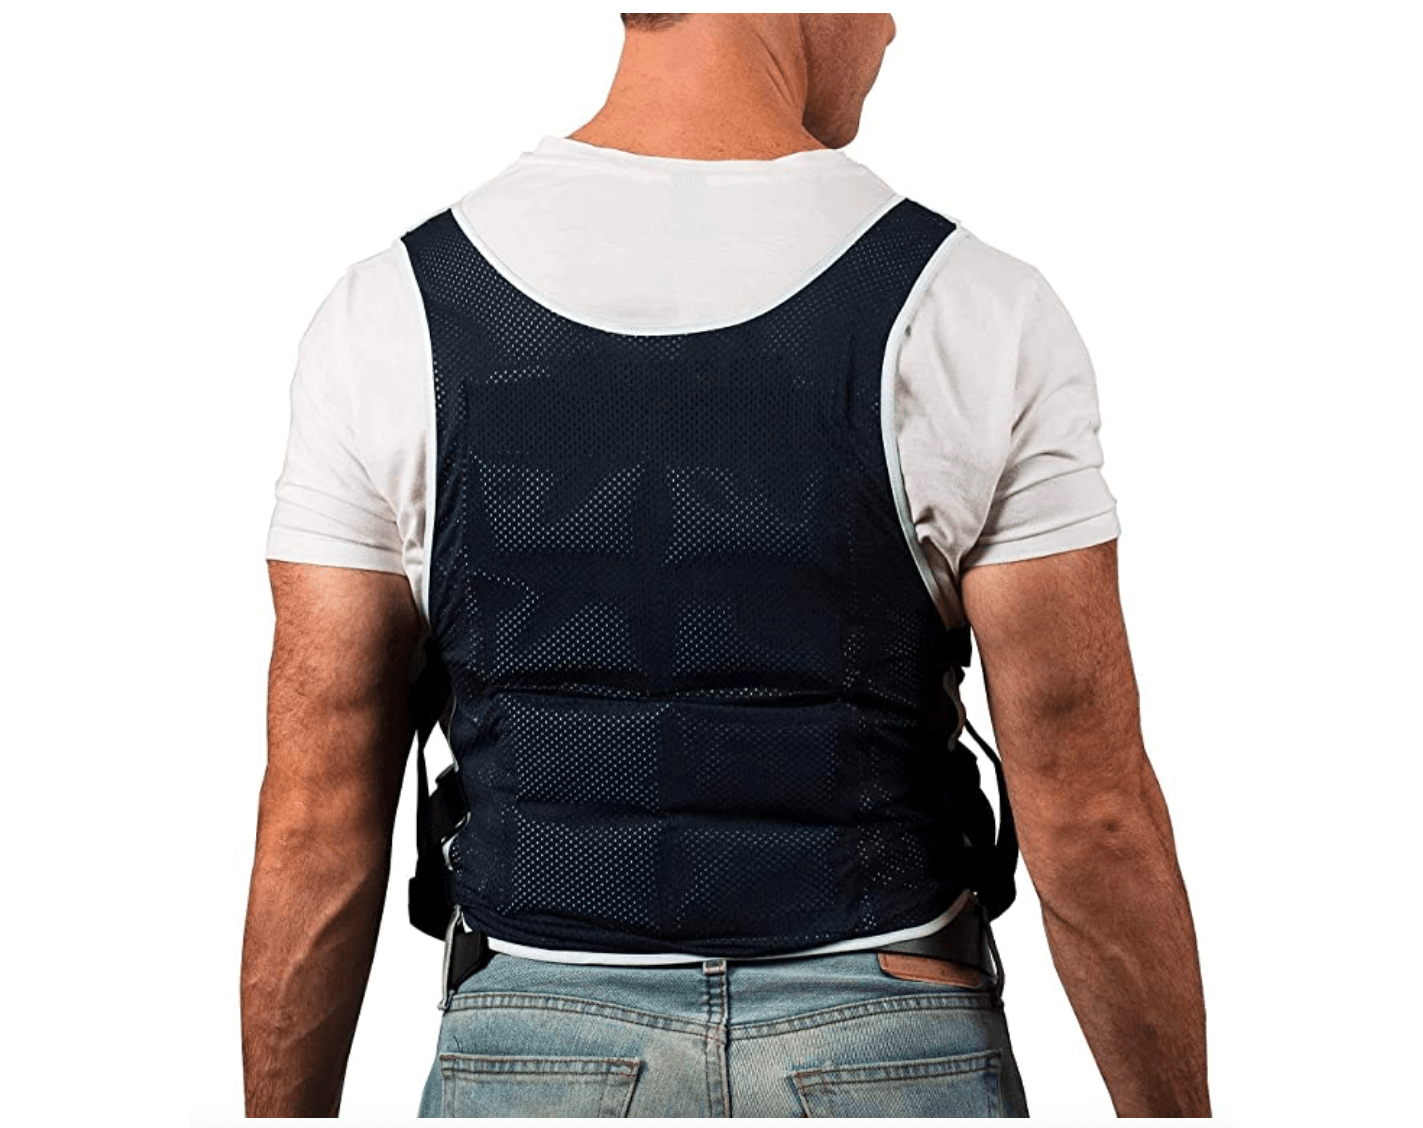 New Home Innovations Cooling Vest